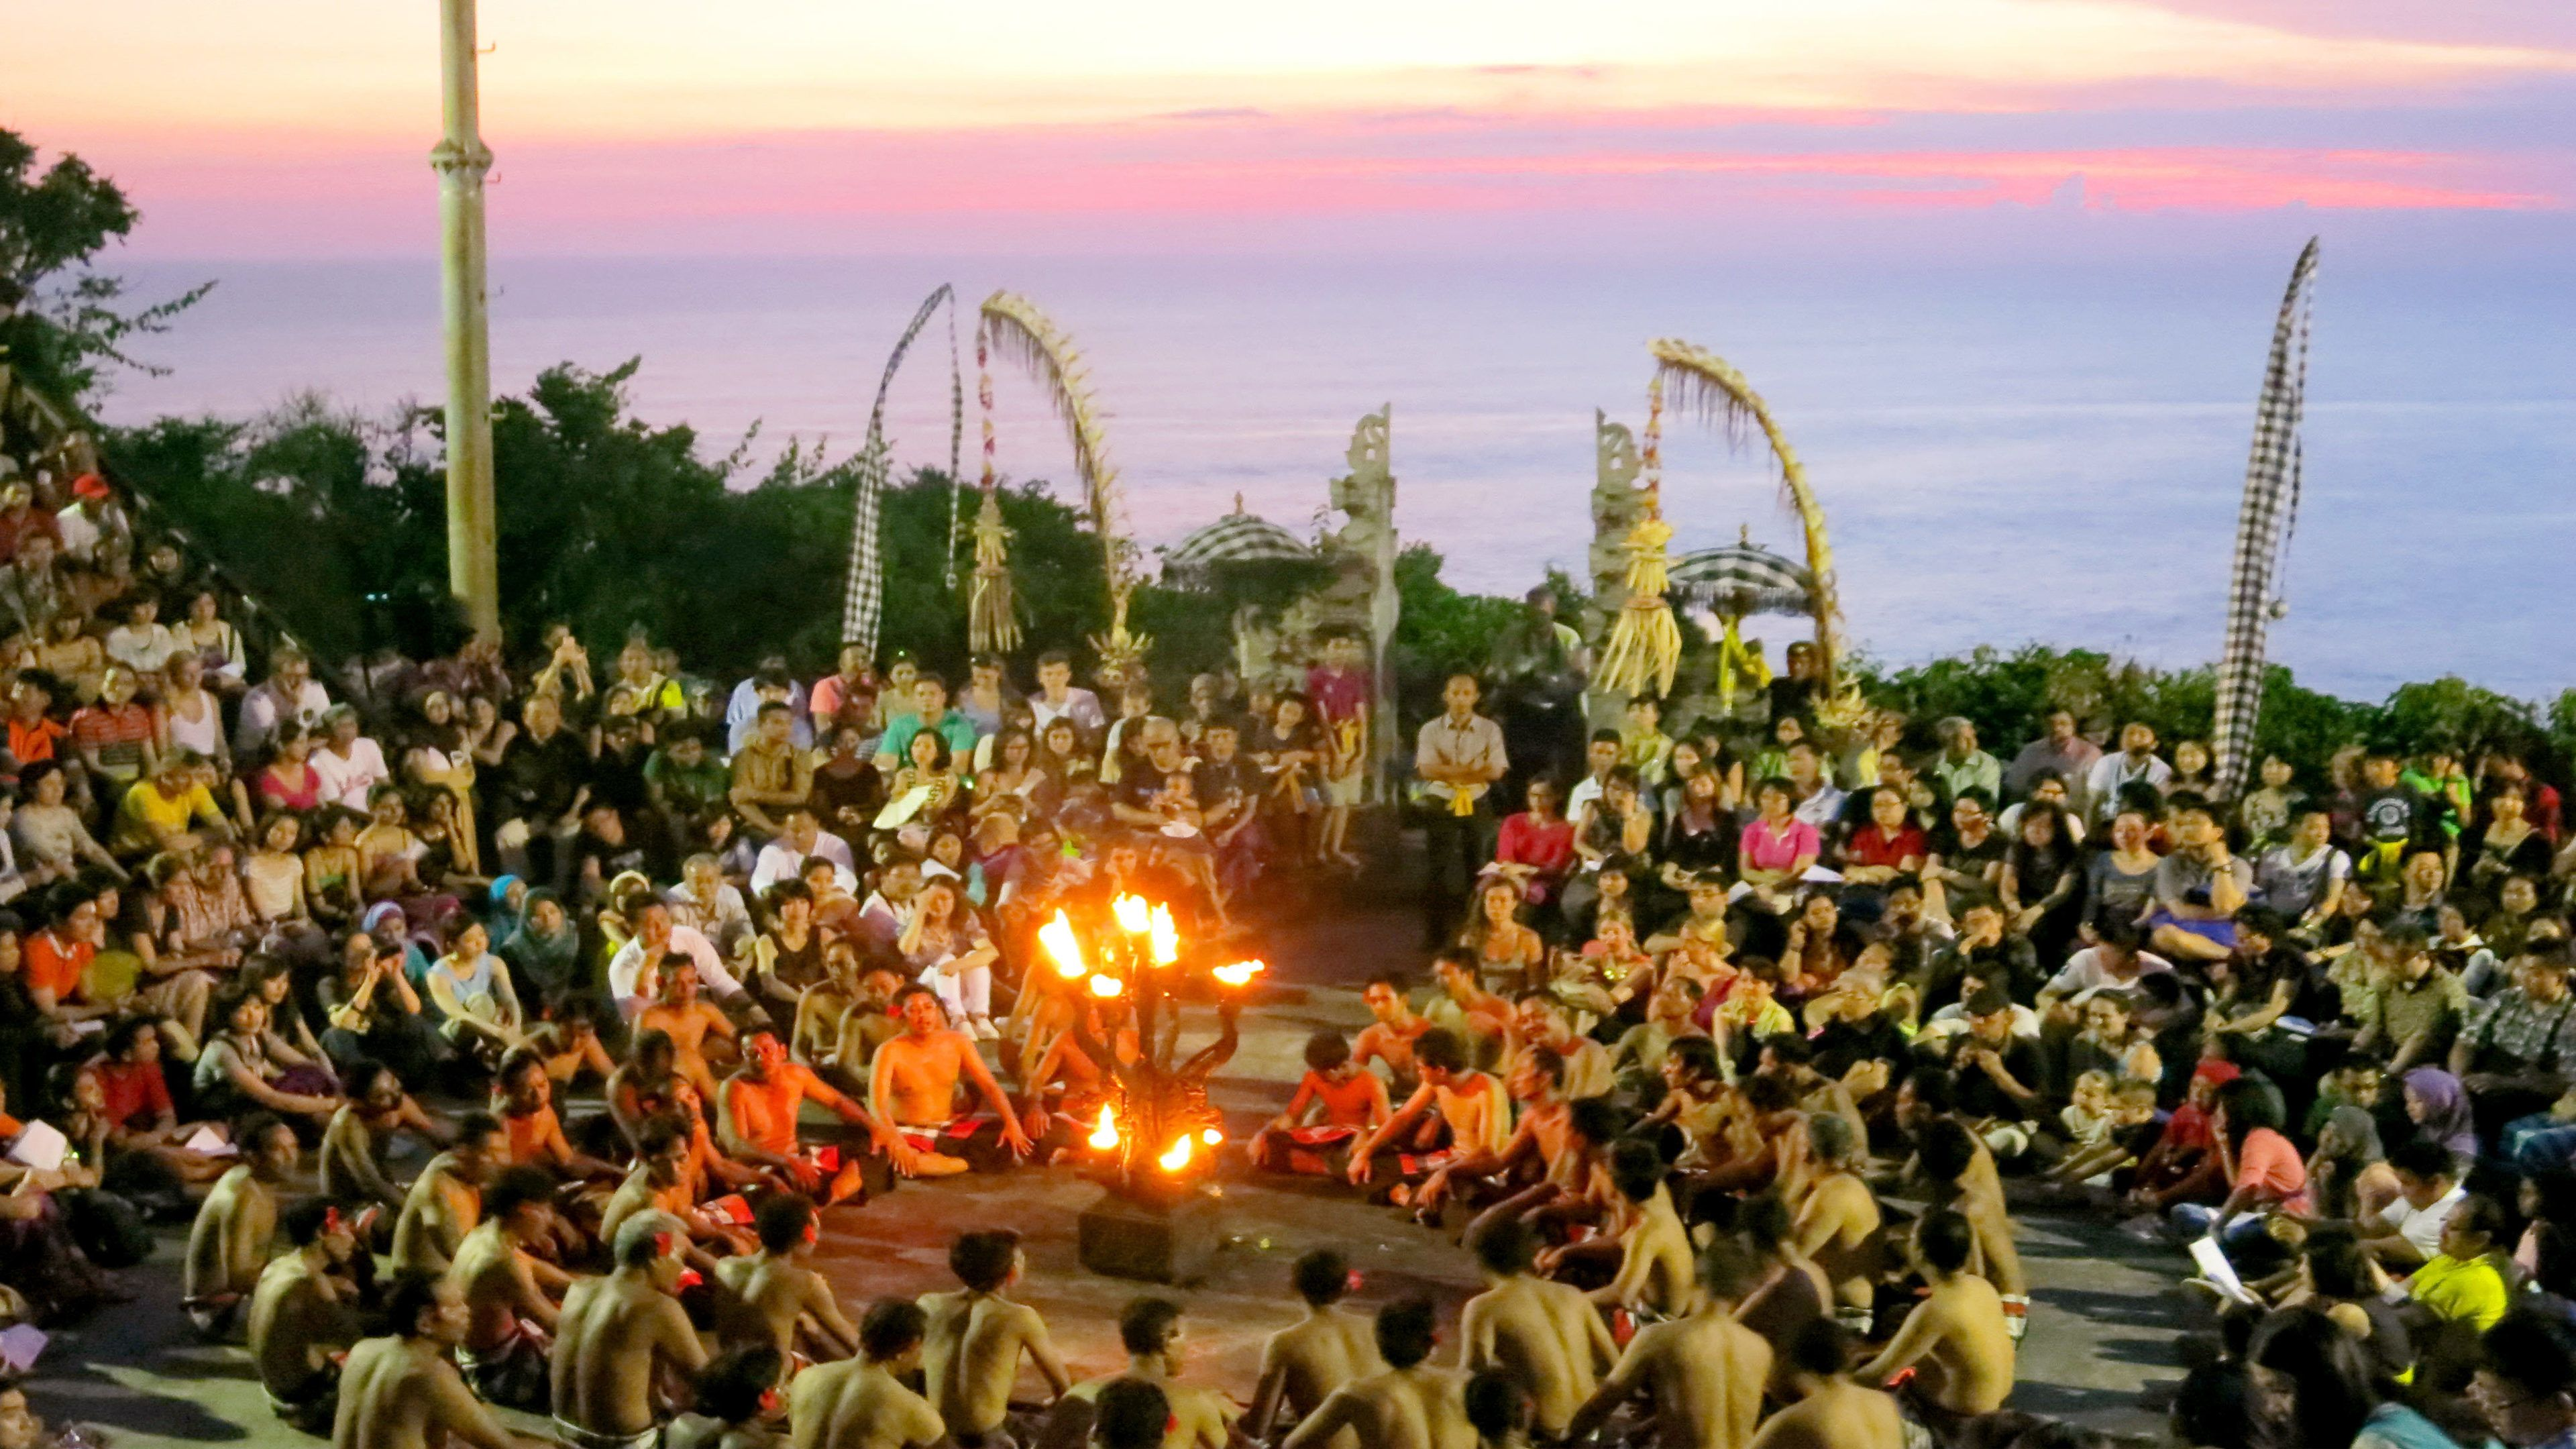 Sunset Kecak Dance at Uluwatu & Barbecue Seafood Dinner